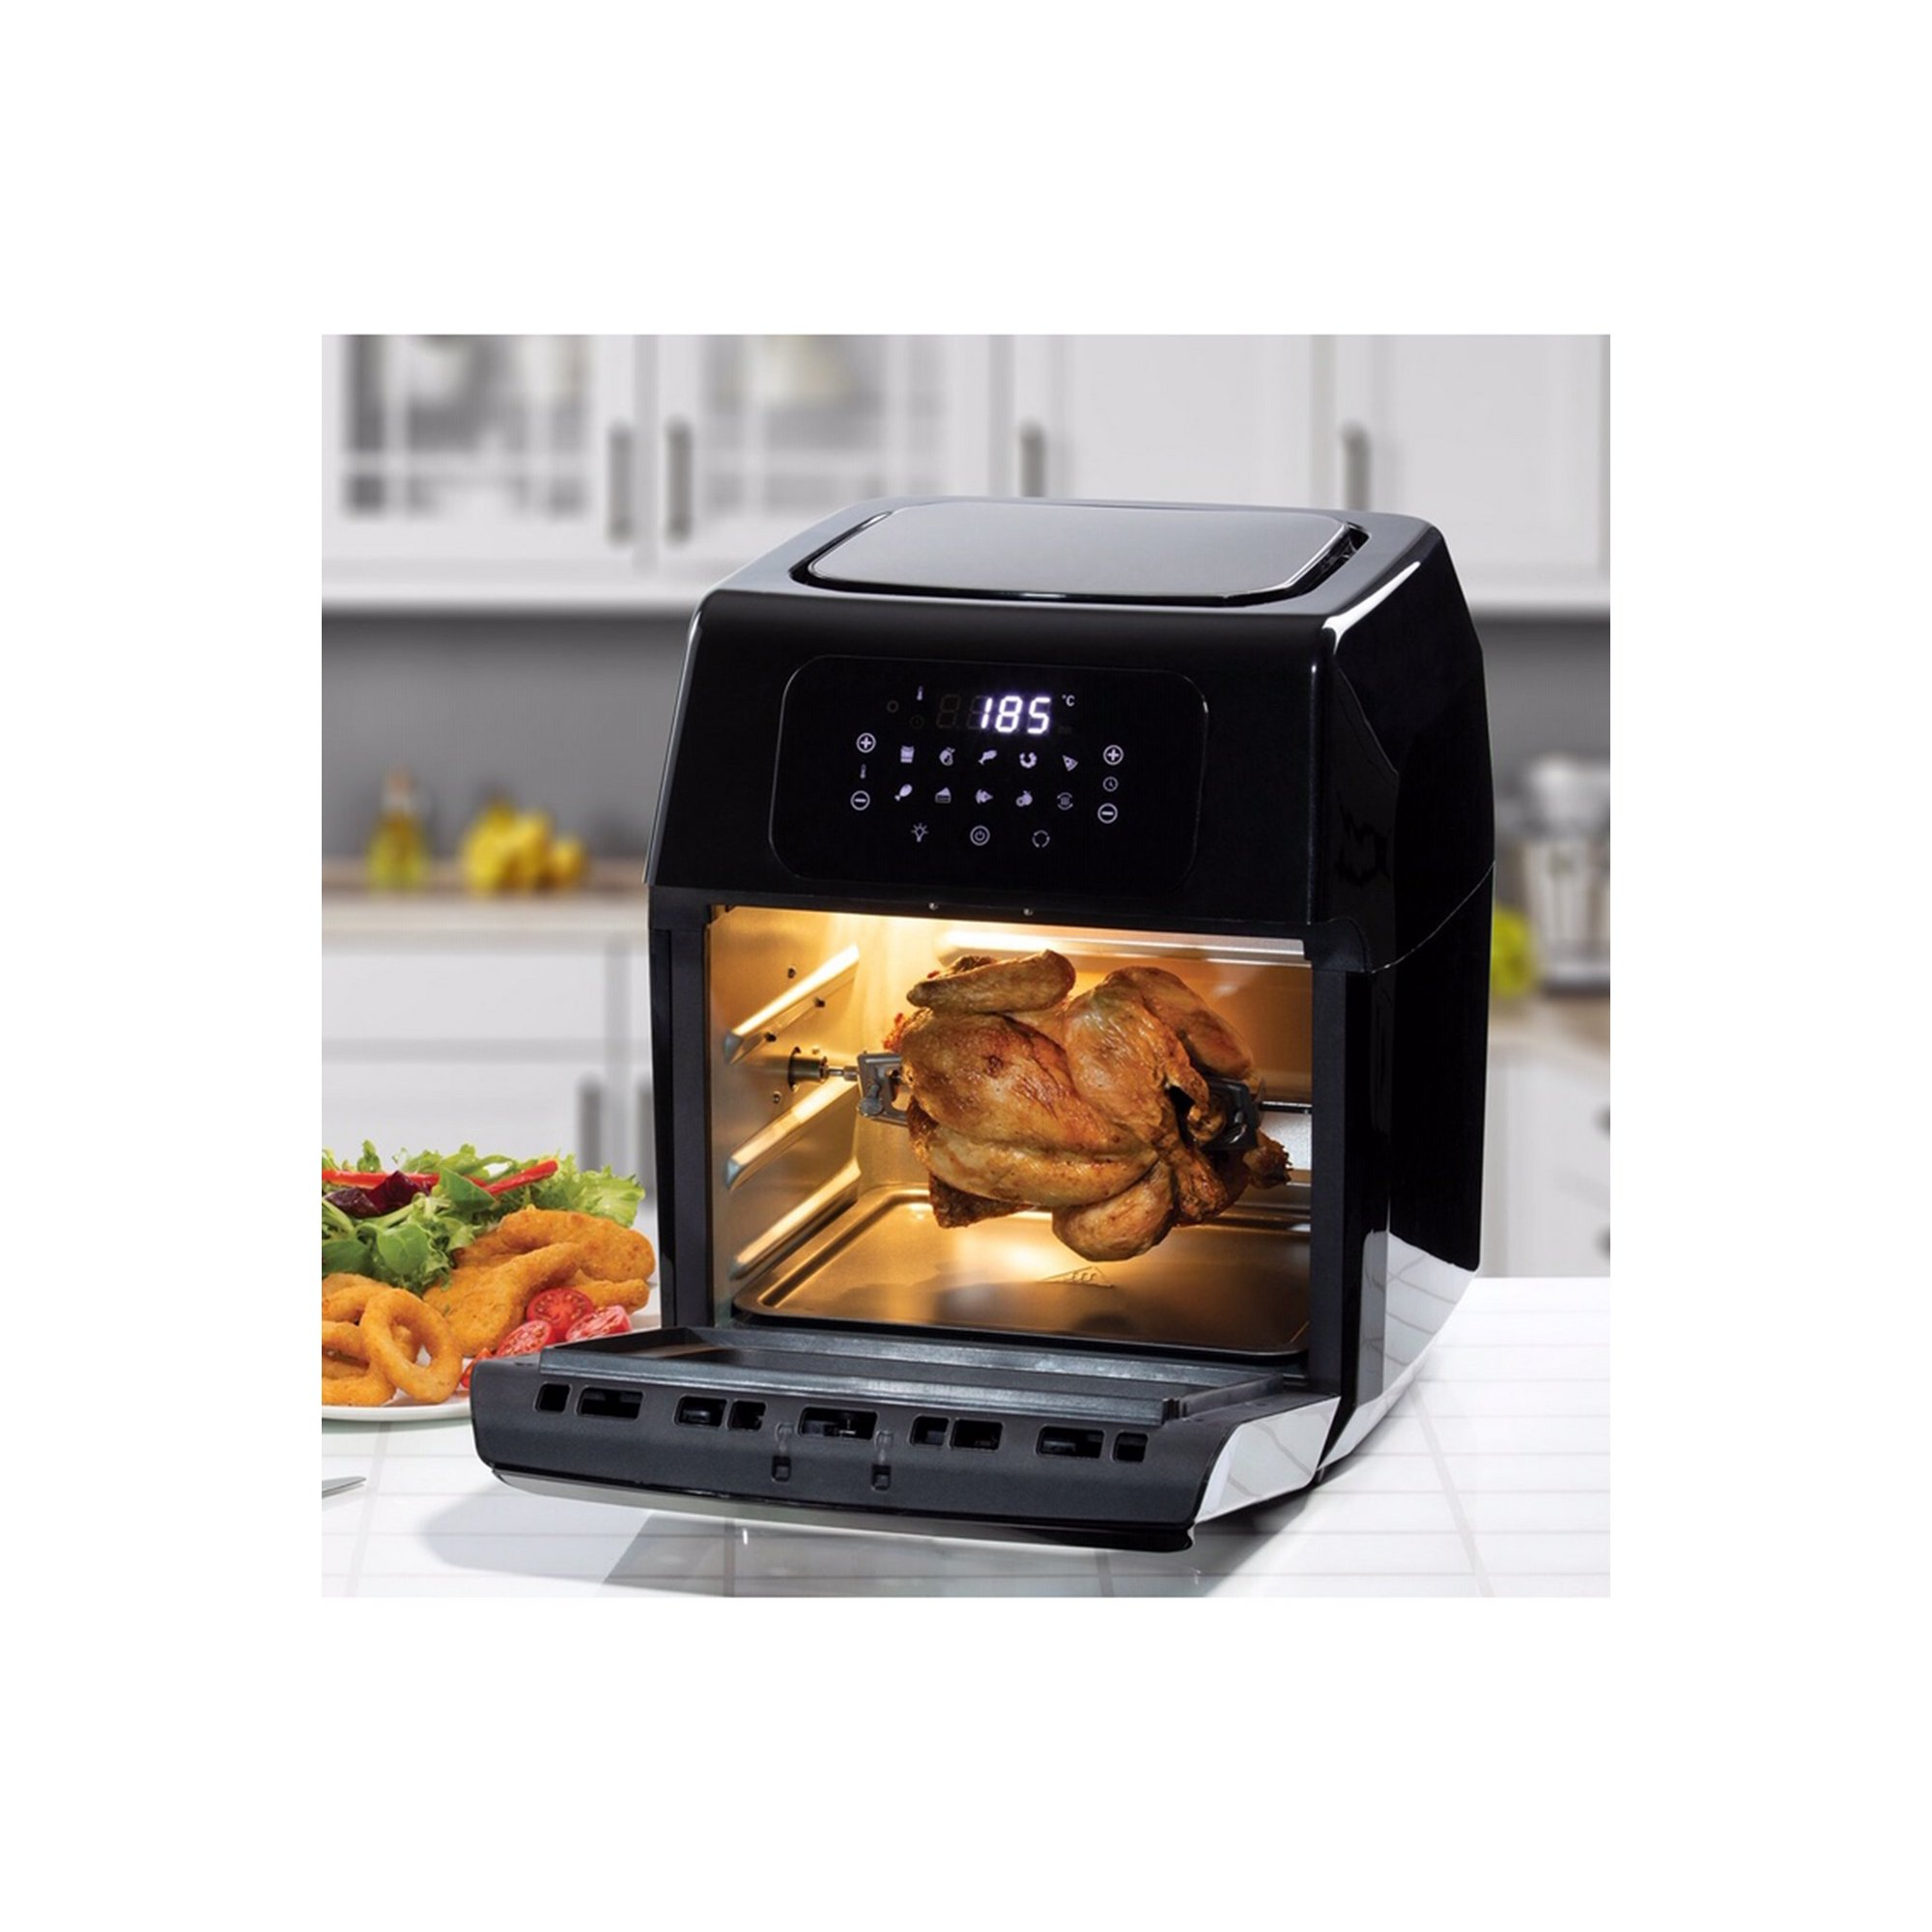 Image of Daewoo 12 Litre 1800W Rotisserie Air Fryer Oven